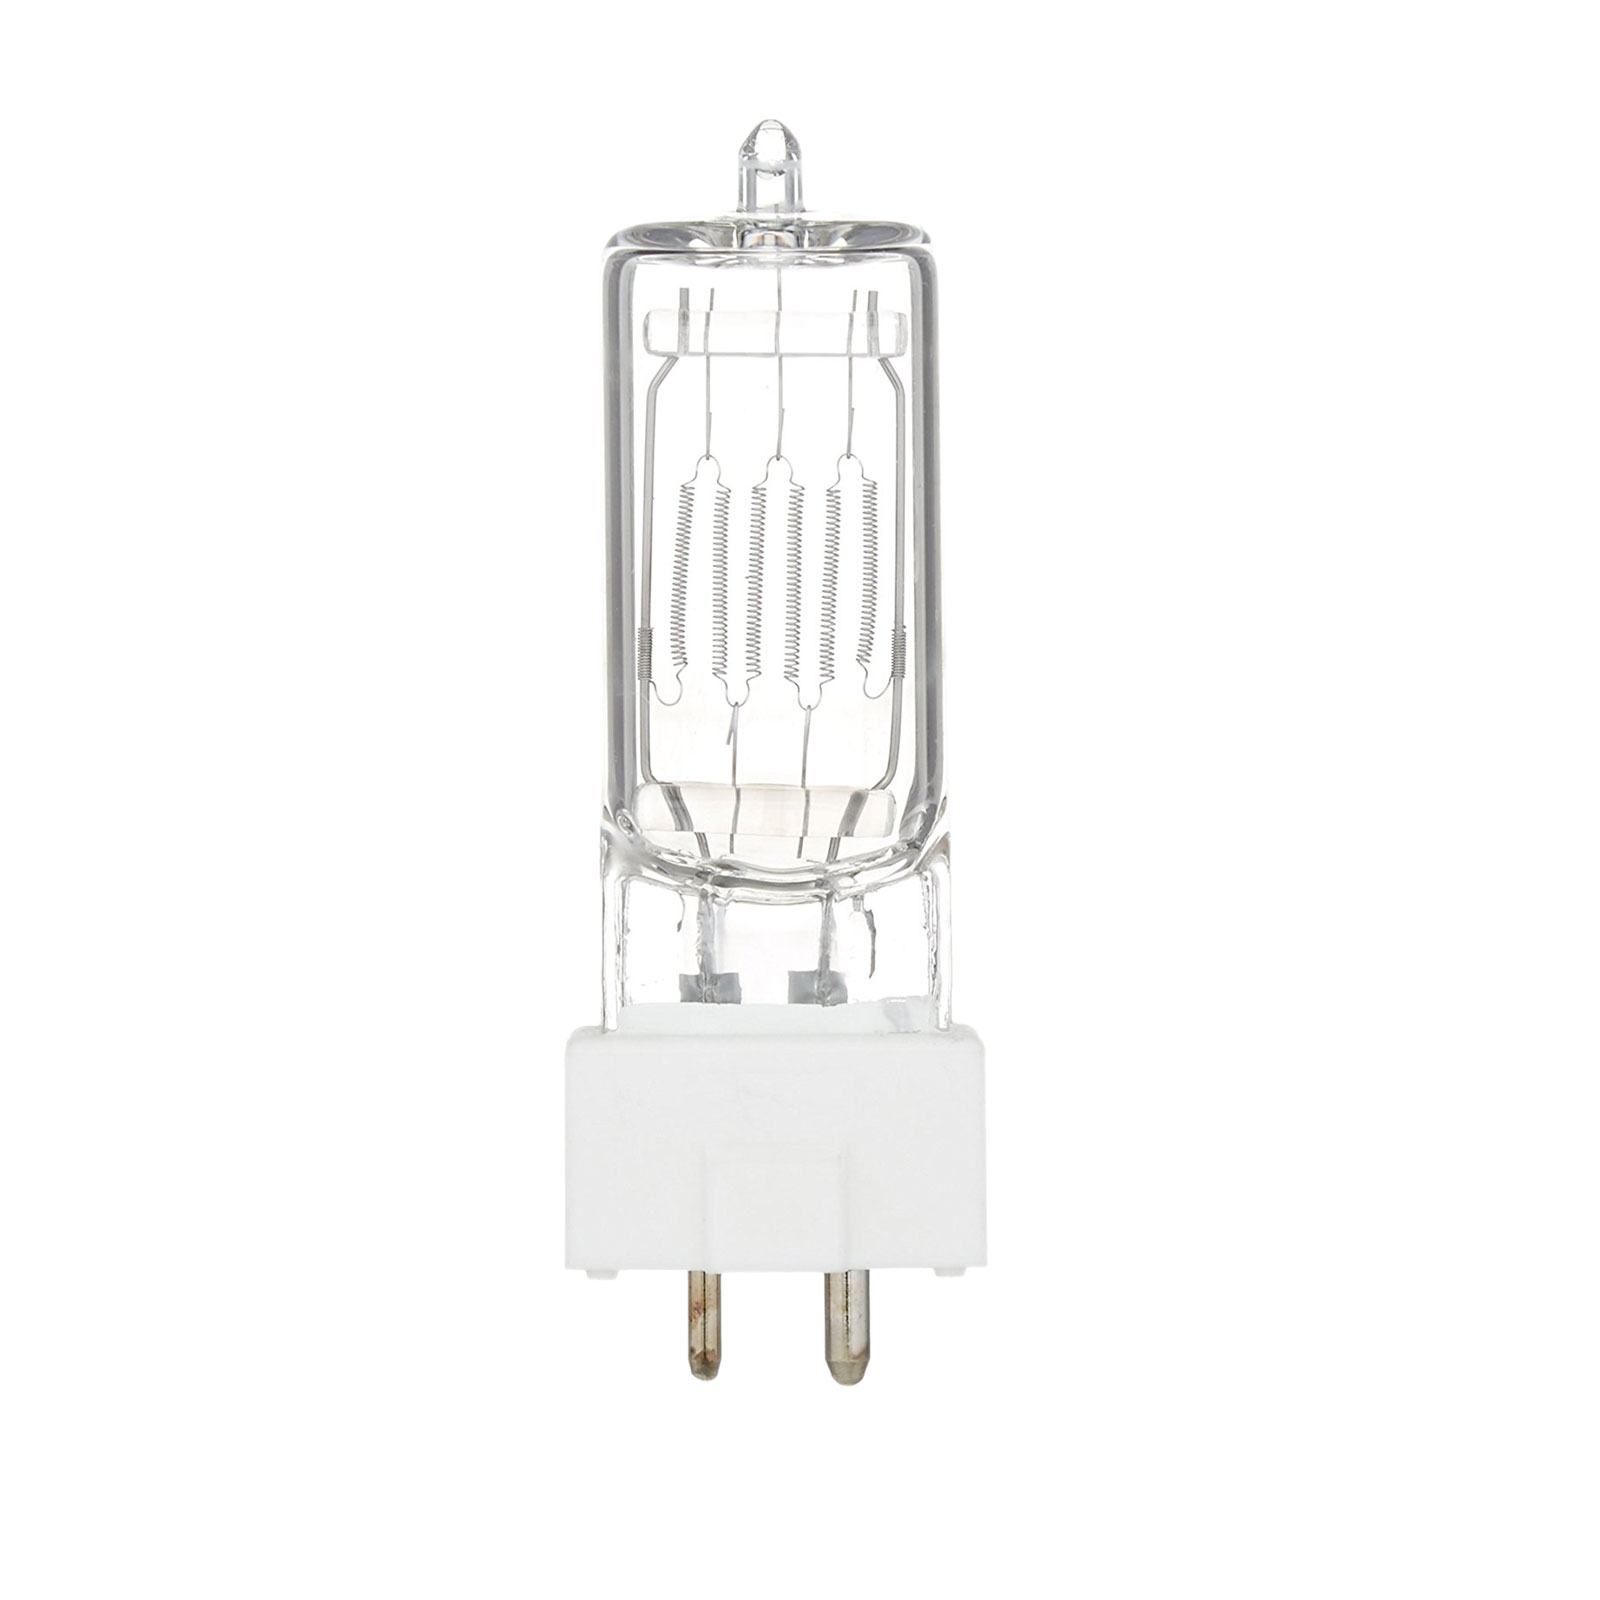 Ushio Cp89 650w Gy9 5 240v Lamp K X4 Philips P Frl Frm